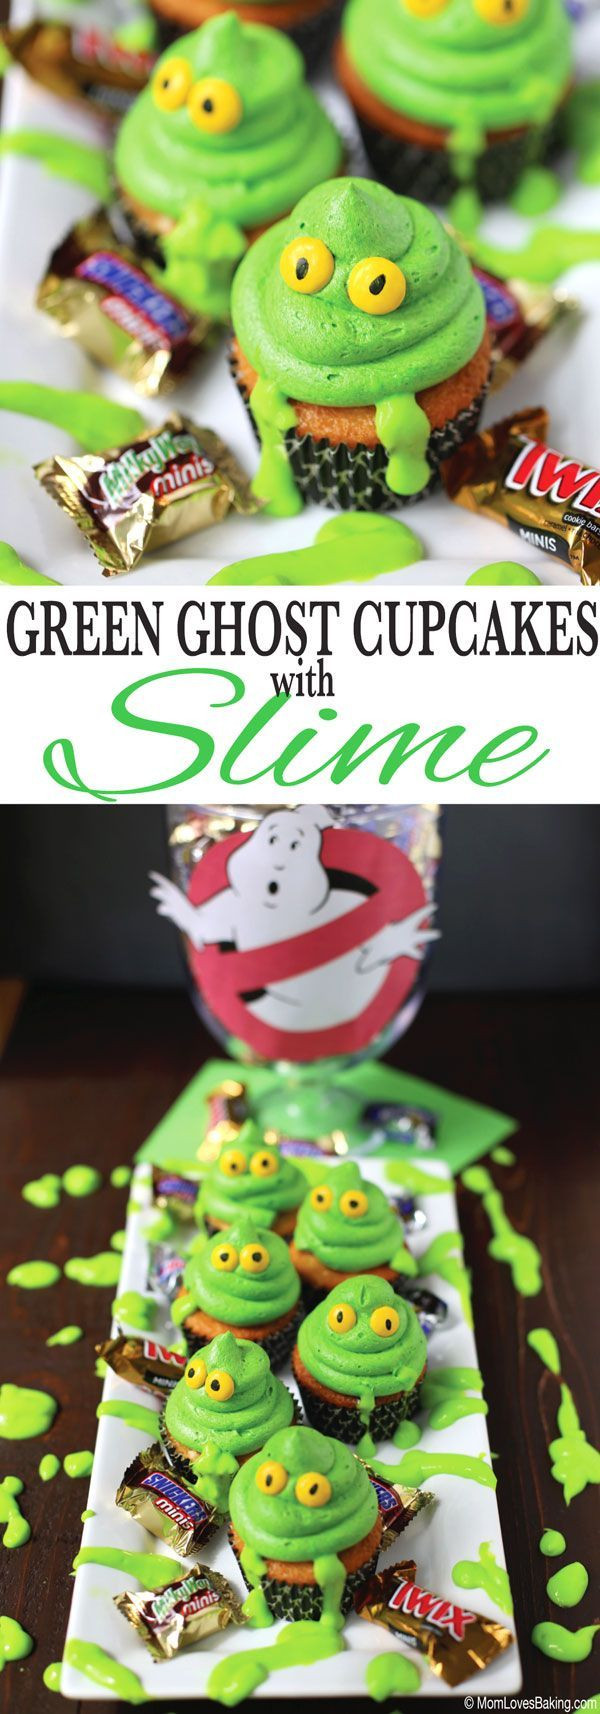 Walmart Halloween Cupcakes  Green Ghost Cupcakes with Slime Recipe